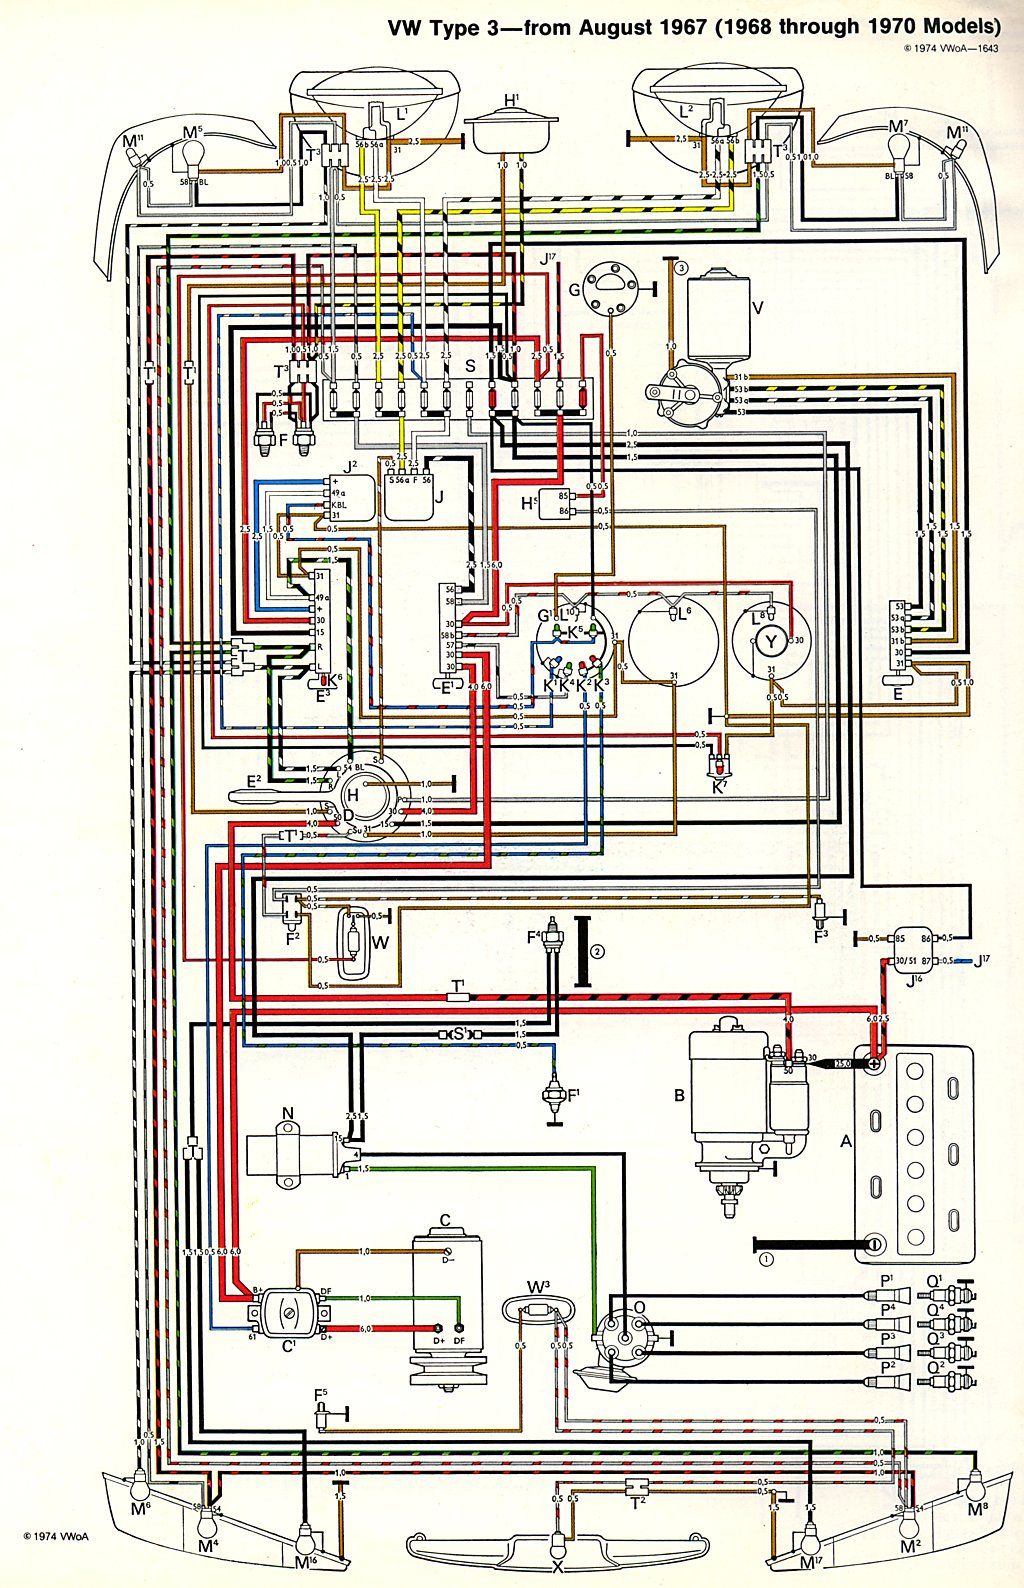 Free Volkswagen Wiring Diagrams Just Another Diagram Blog For Air Cooled Vw U2022 Rh Aesar Store